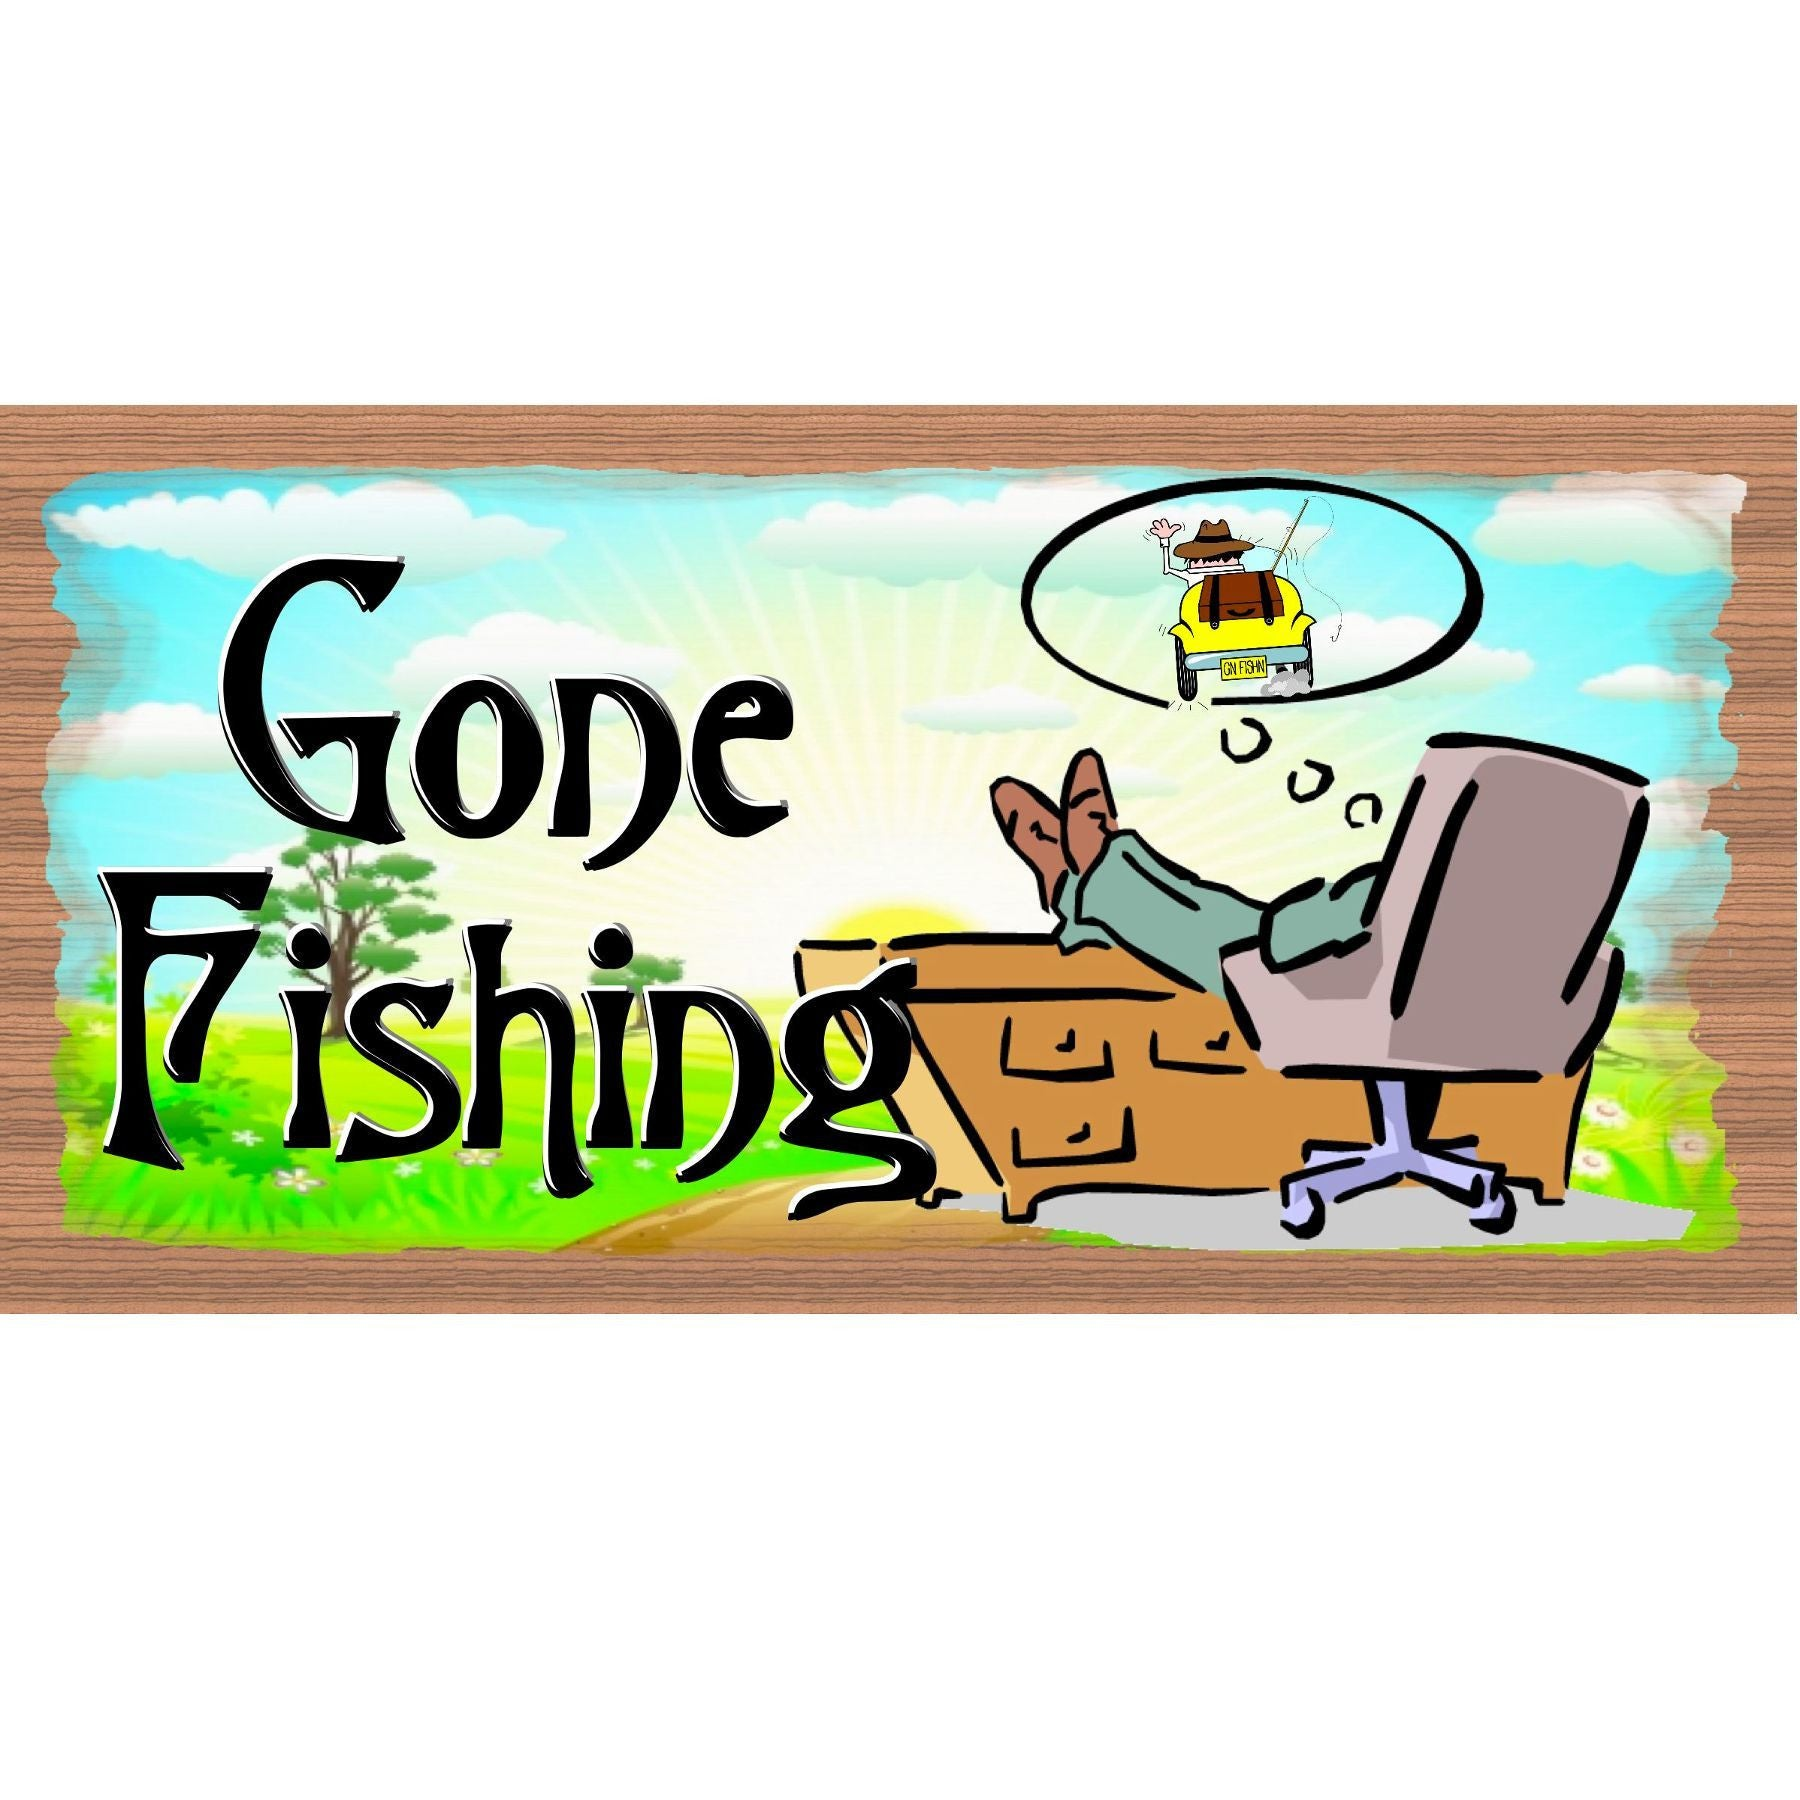 Fishing Wood Signs - GS2338 - Fishing Wood Sign - Fishing plaque